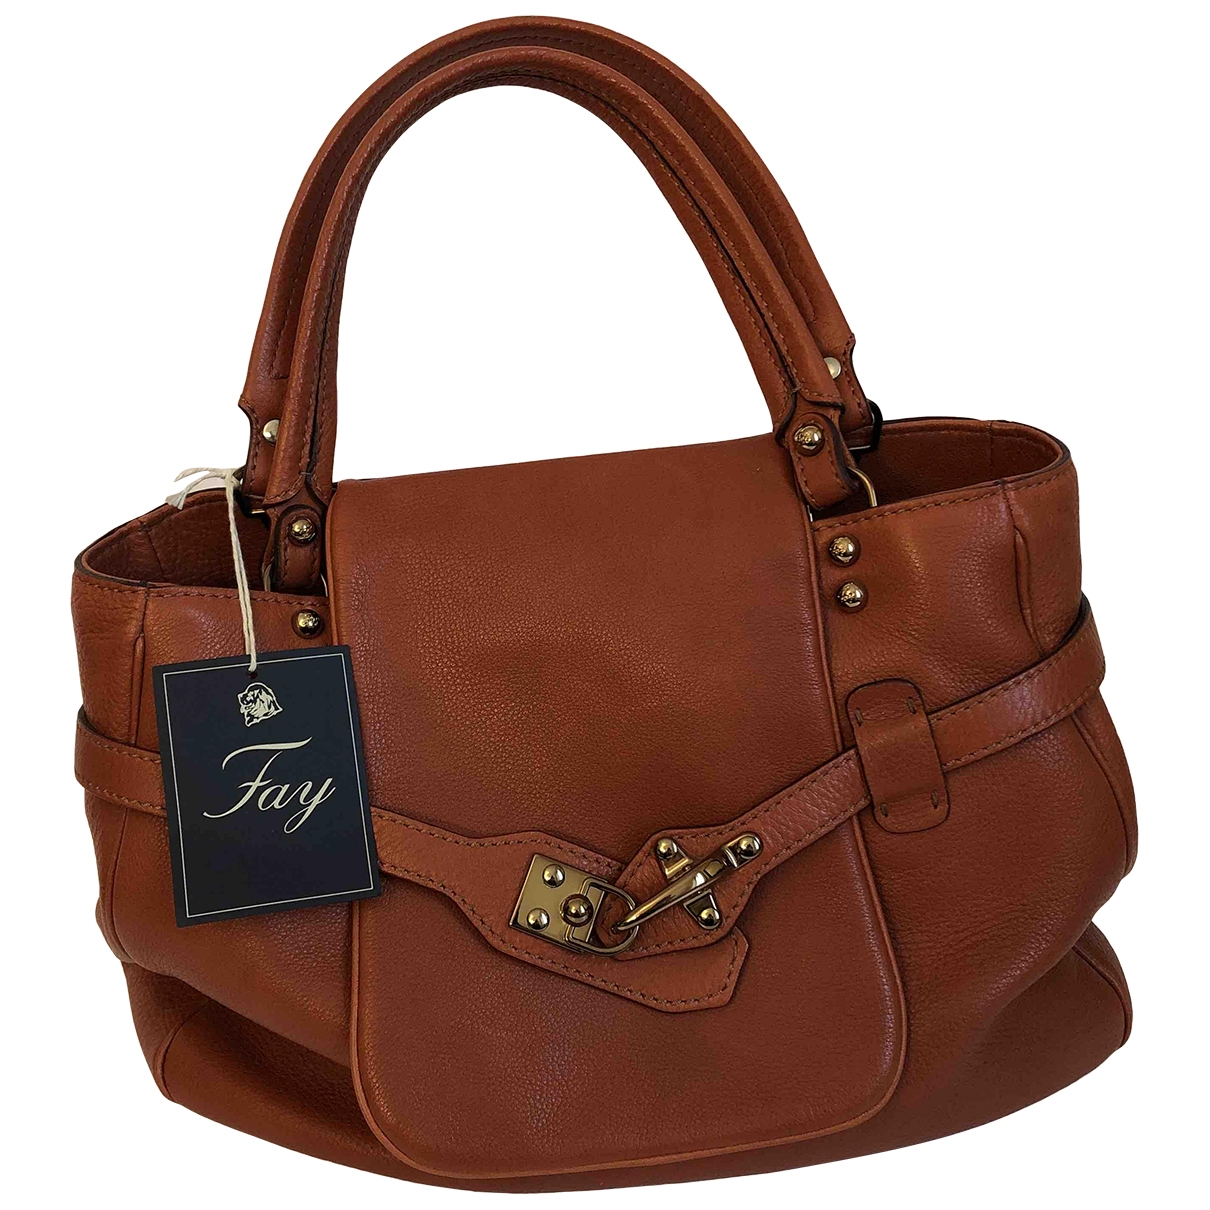 Fay \N Leather handbag for Women \N